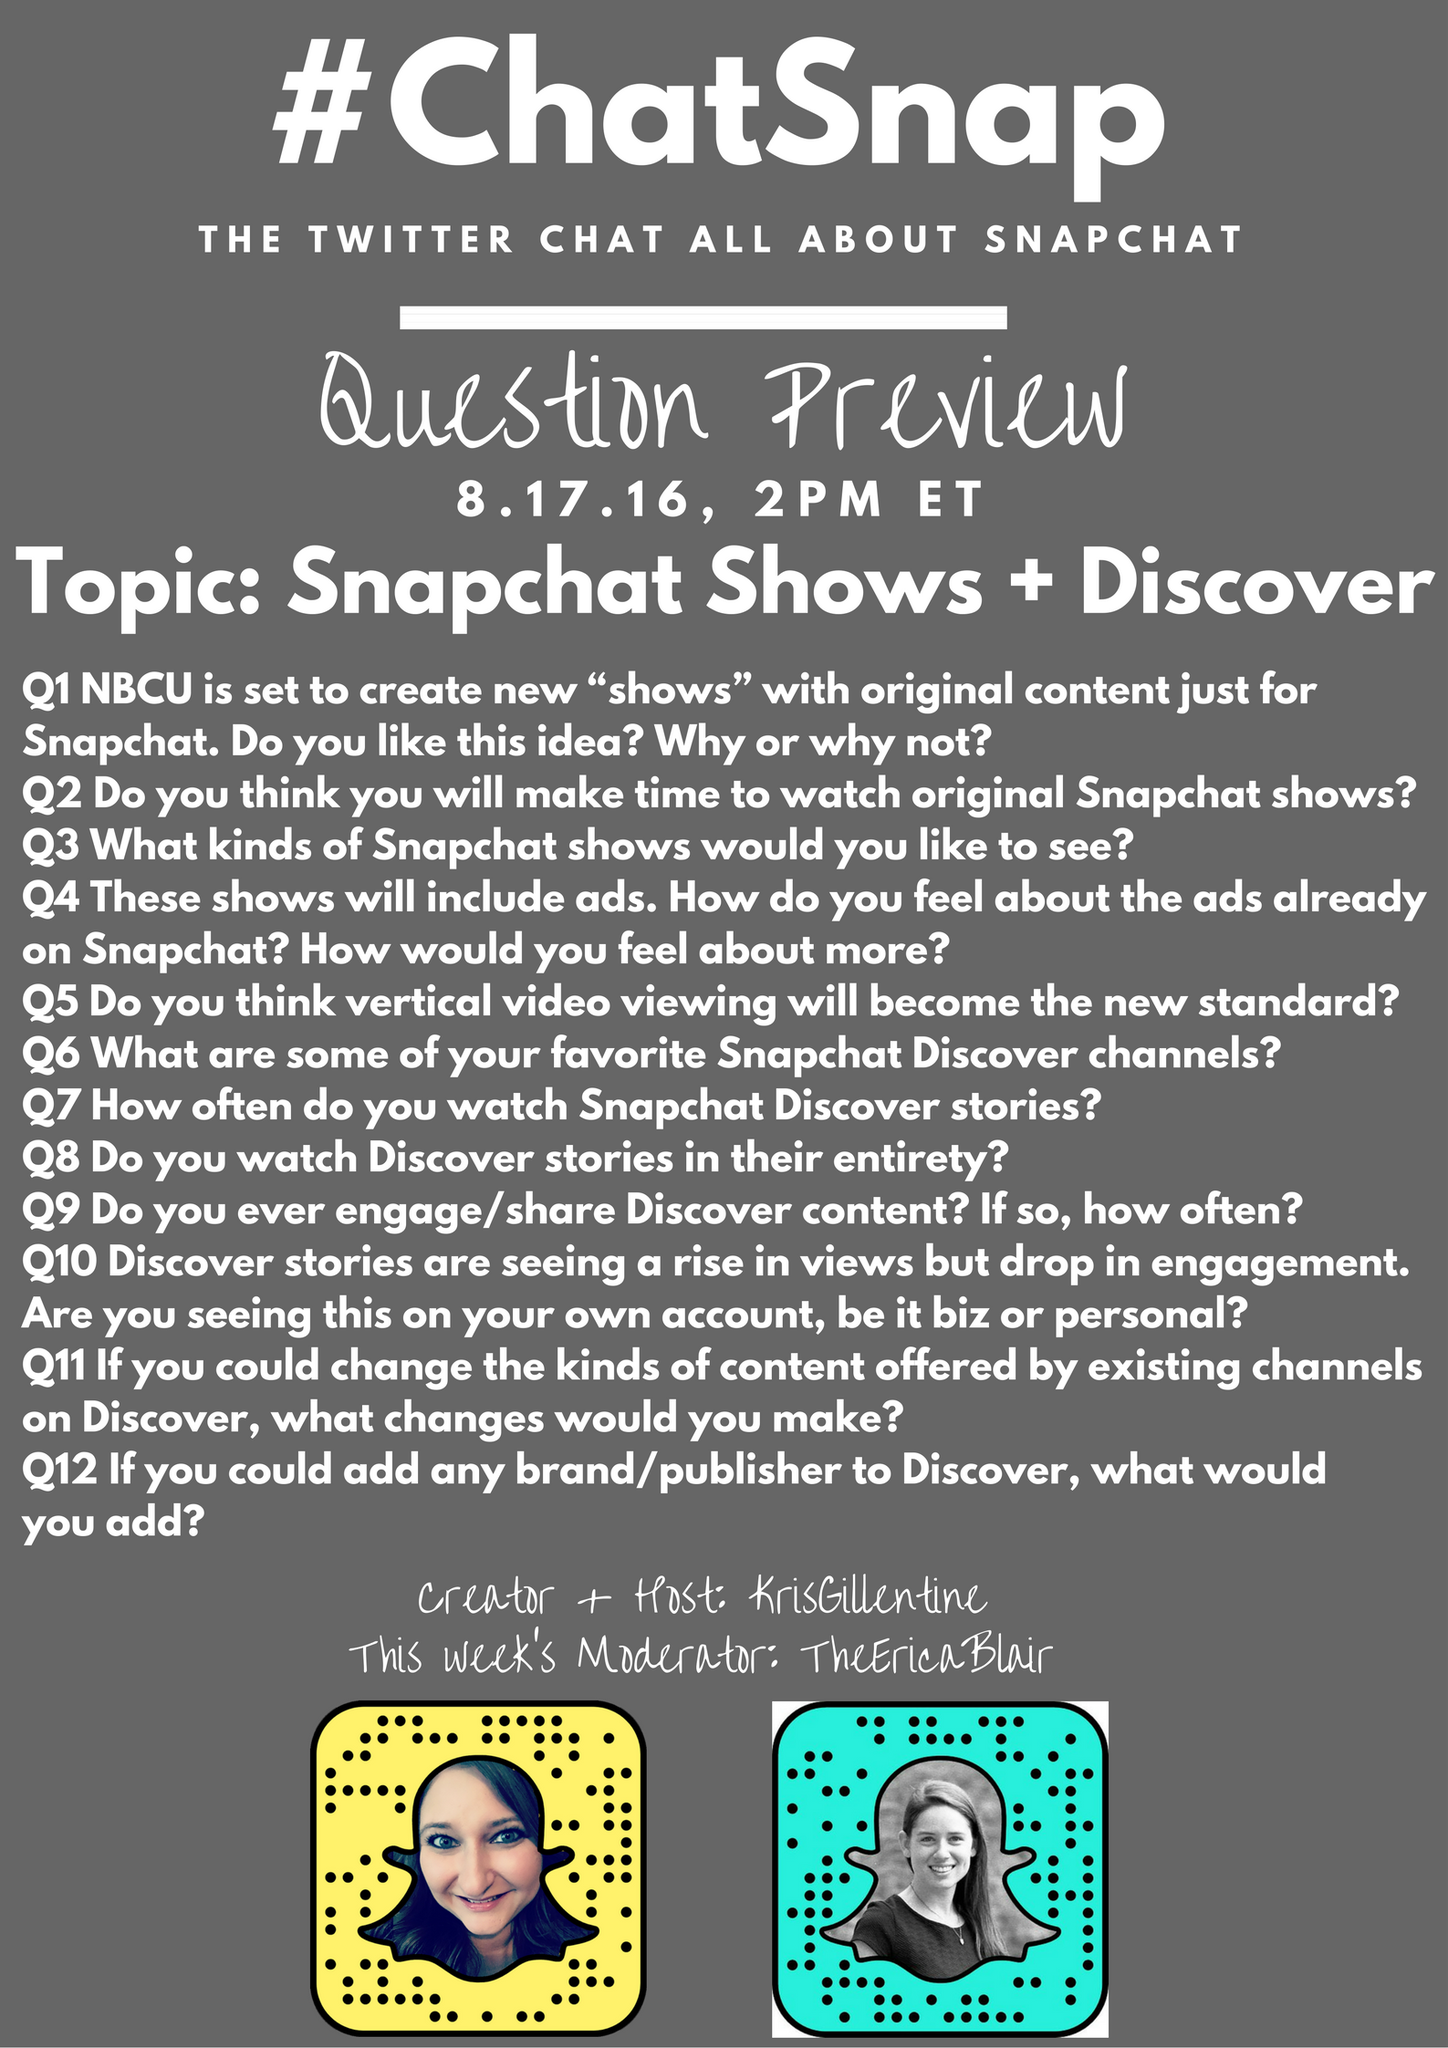 QUESTION PREVIEW for today's #ChatSnap. See you at 2pm ET (6pm GMT, 7pm UK) @TheEricaBlair https://t.co/roYQ6UEmnD